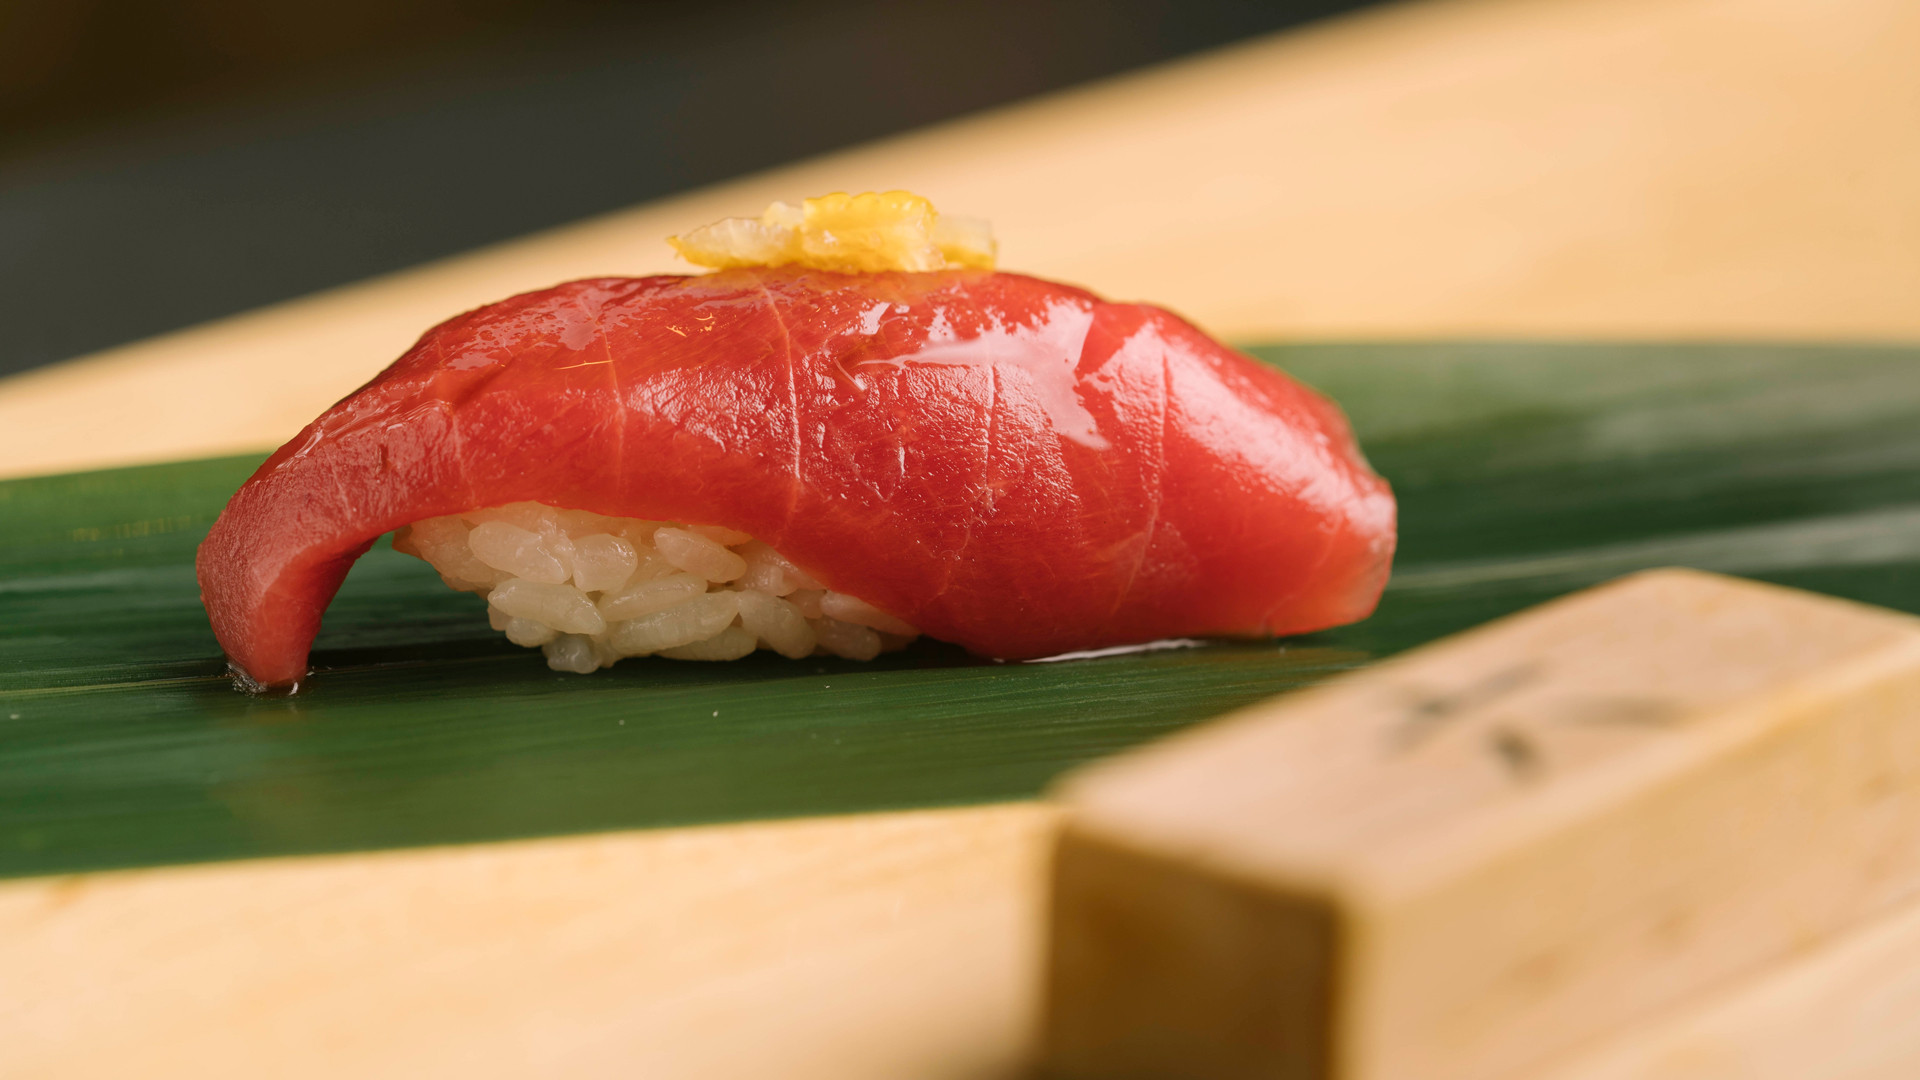 The best sushi in Toronto | Tuna belly nigiri sushi at Tachi stand-up sushi bar